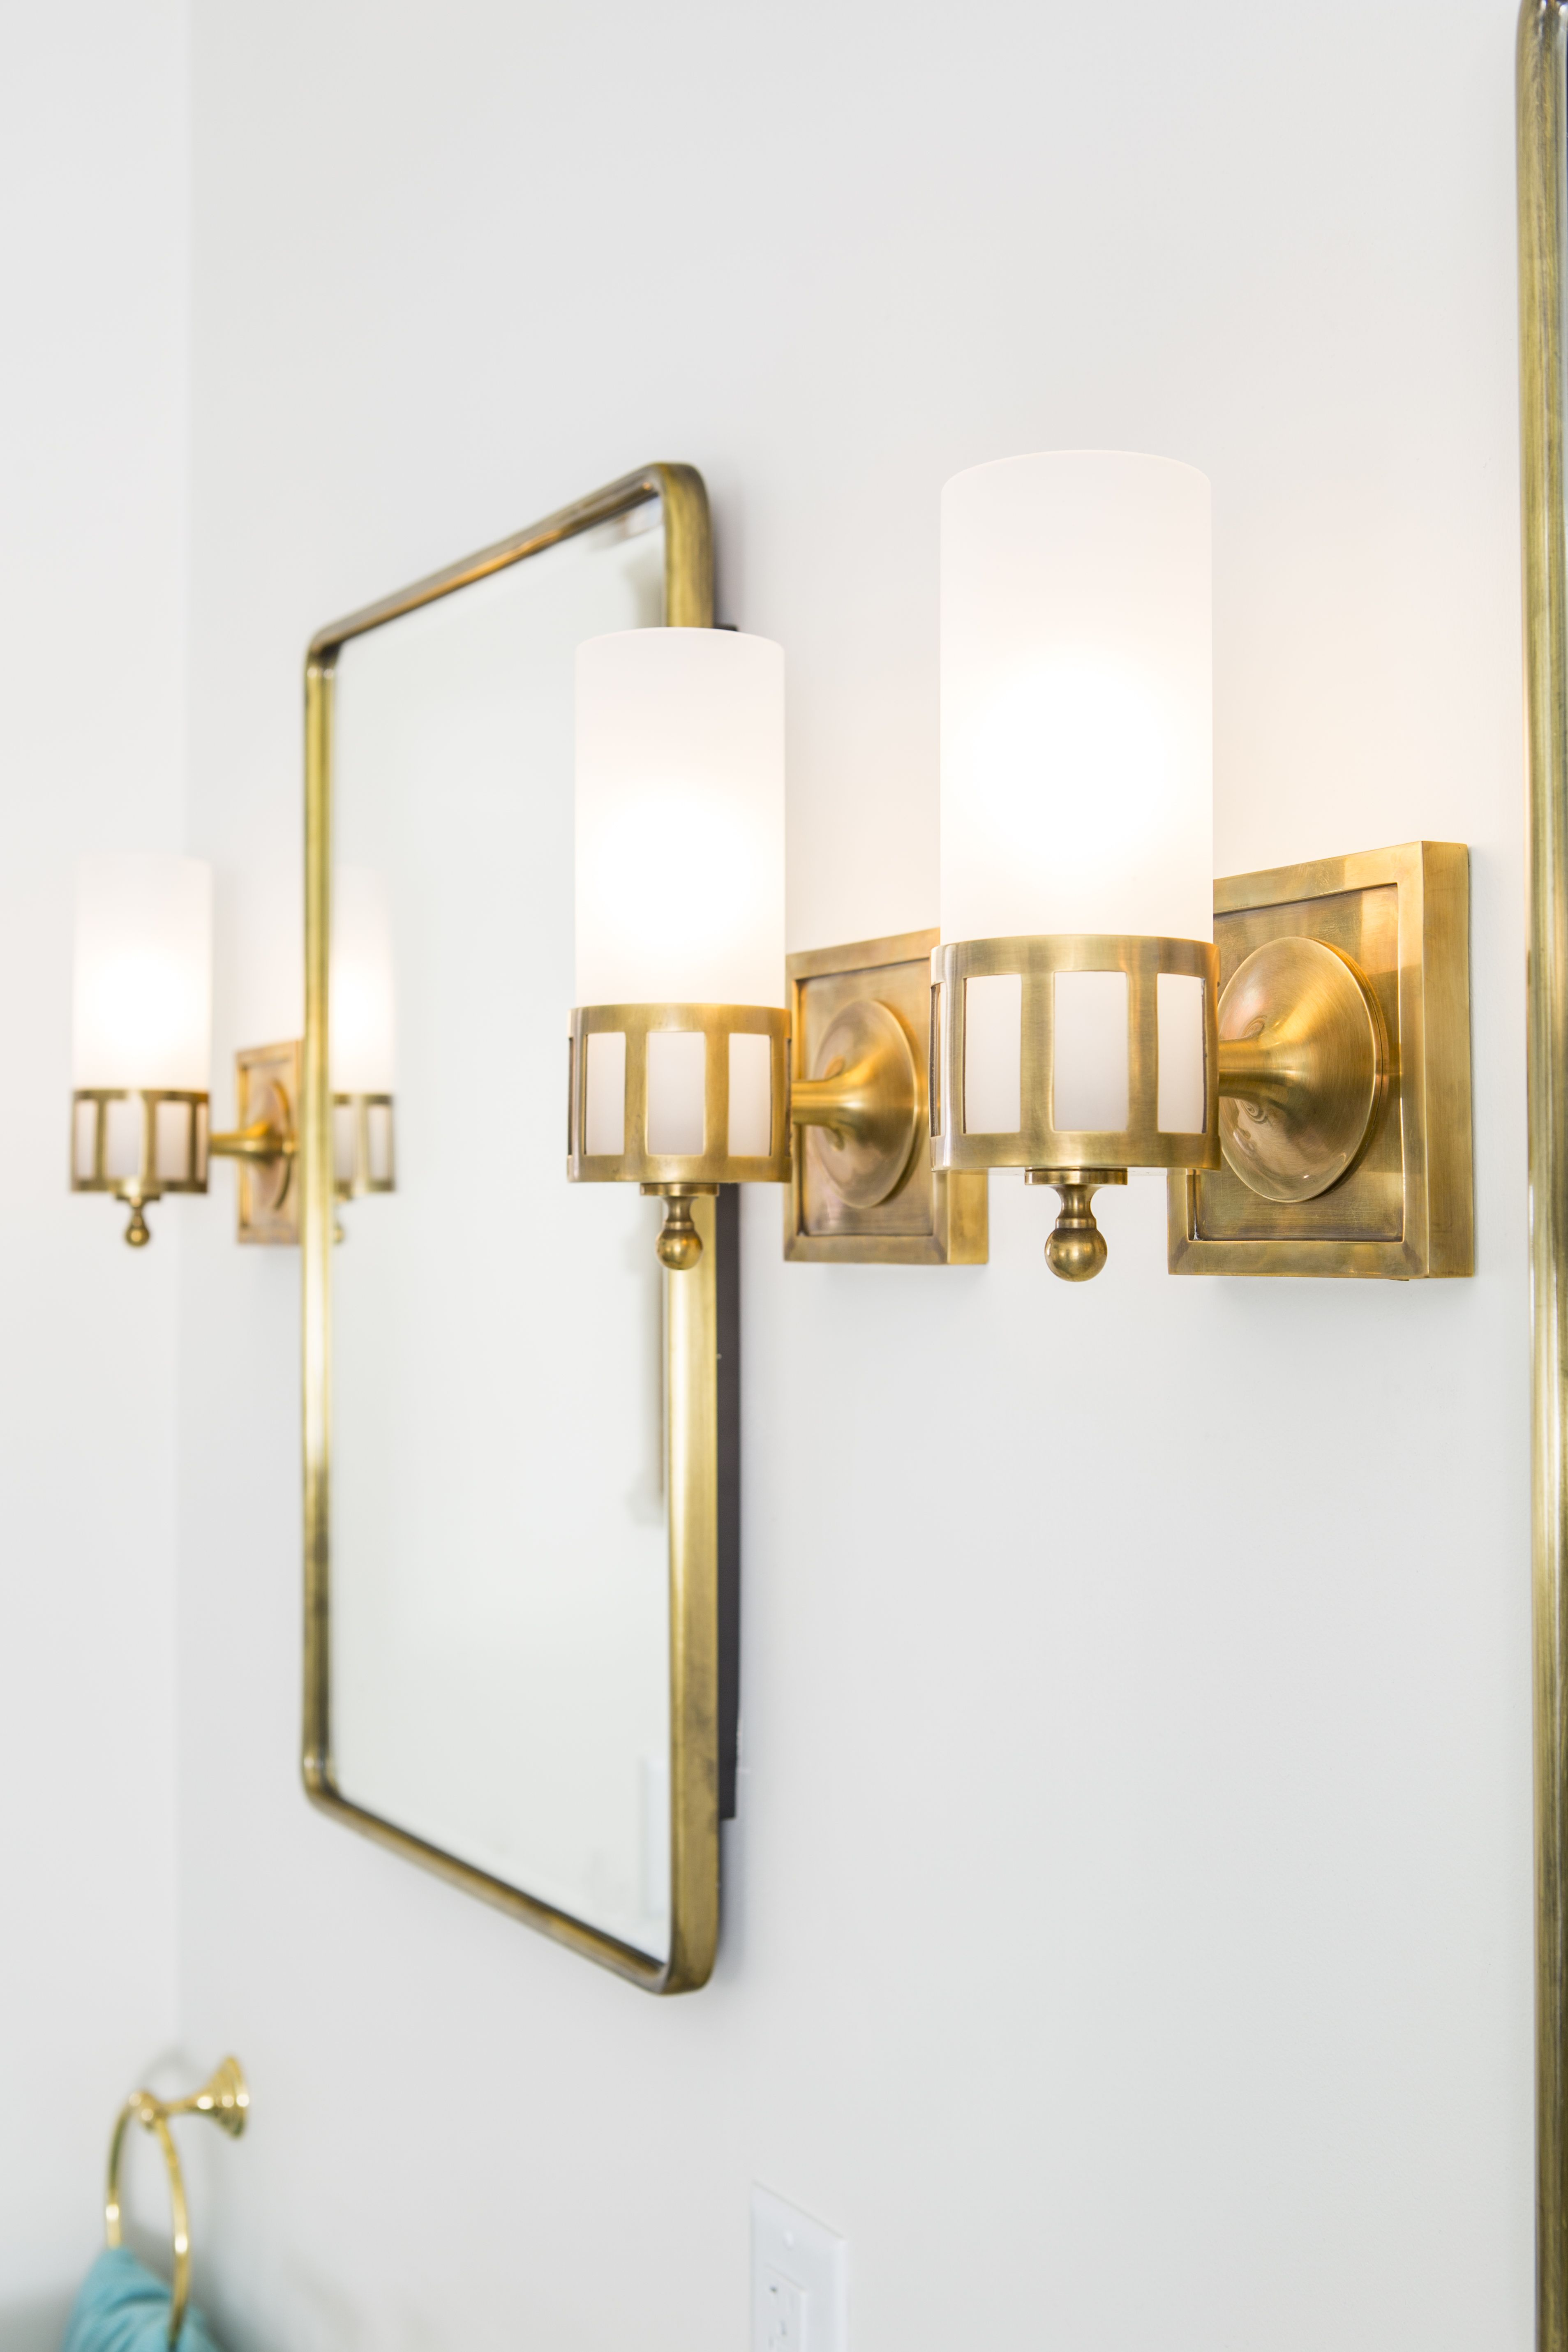 wall ul sconce brass mid il bulb raw bathroom listed light listing century modern industrial stjc fullxfull gold vanity